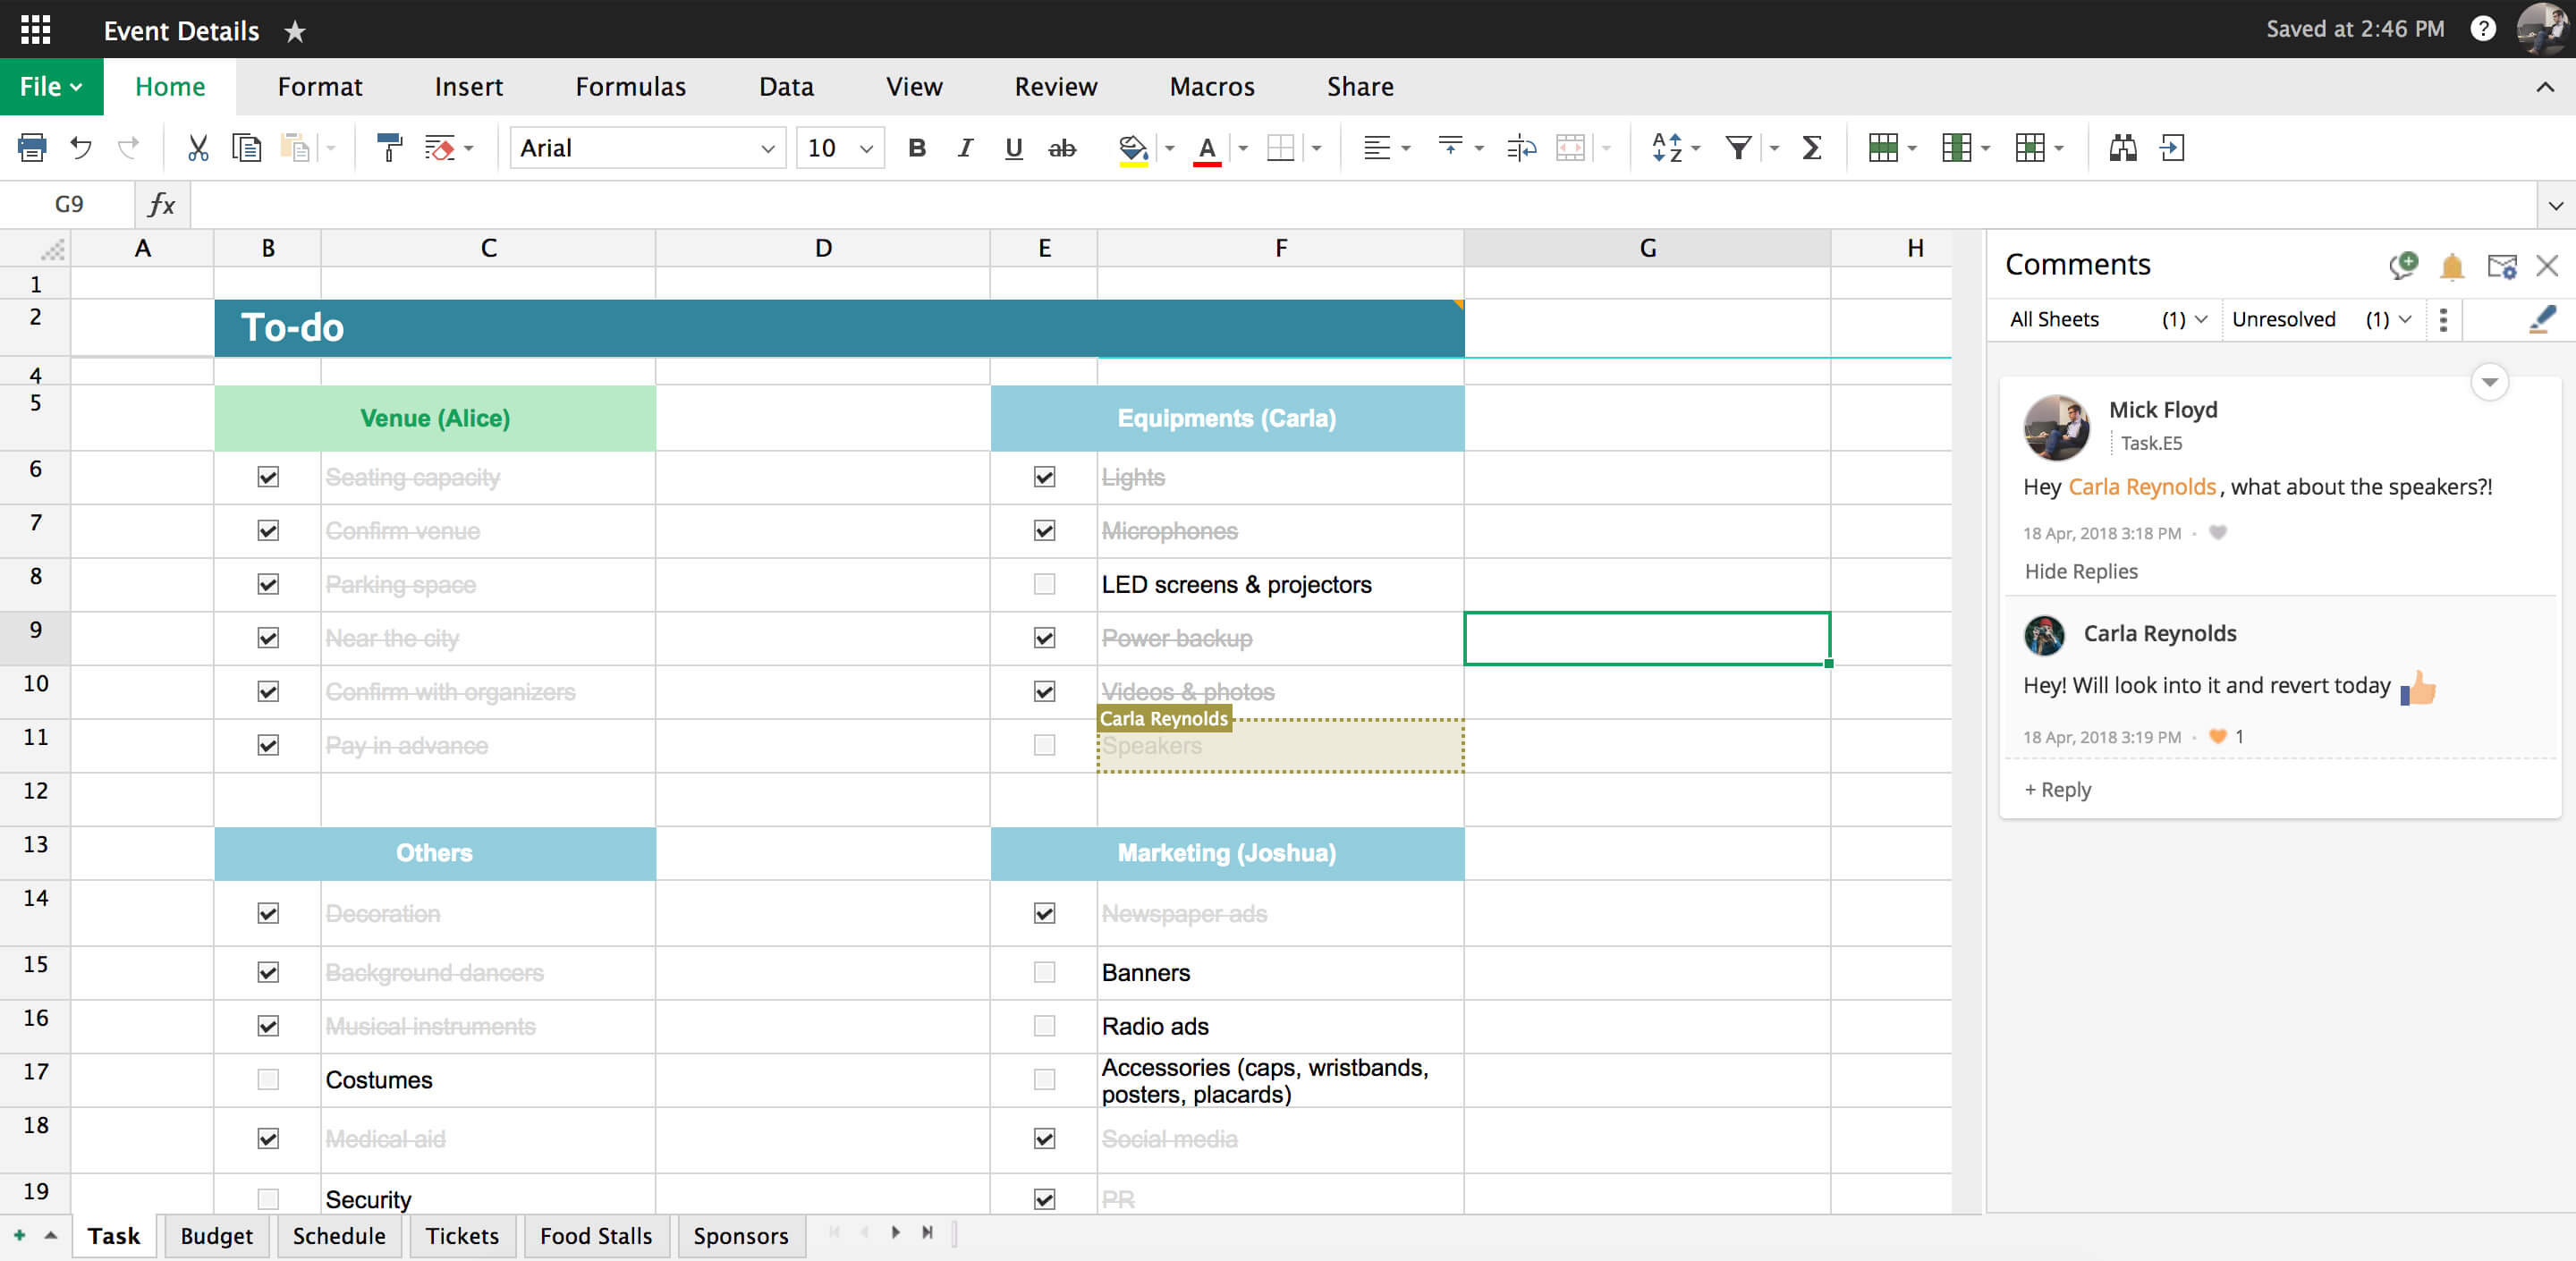 Zoho Spreadsheet Login With Charts, Comments, And Other Features  Zoho Sheet Zoho Spreadsheet Login Spreadsheet Downloa Spreadsheet Downloa zoho spreadsheet login